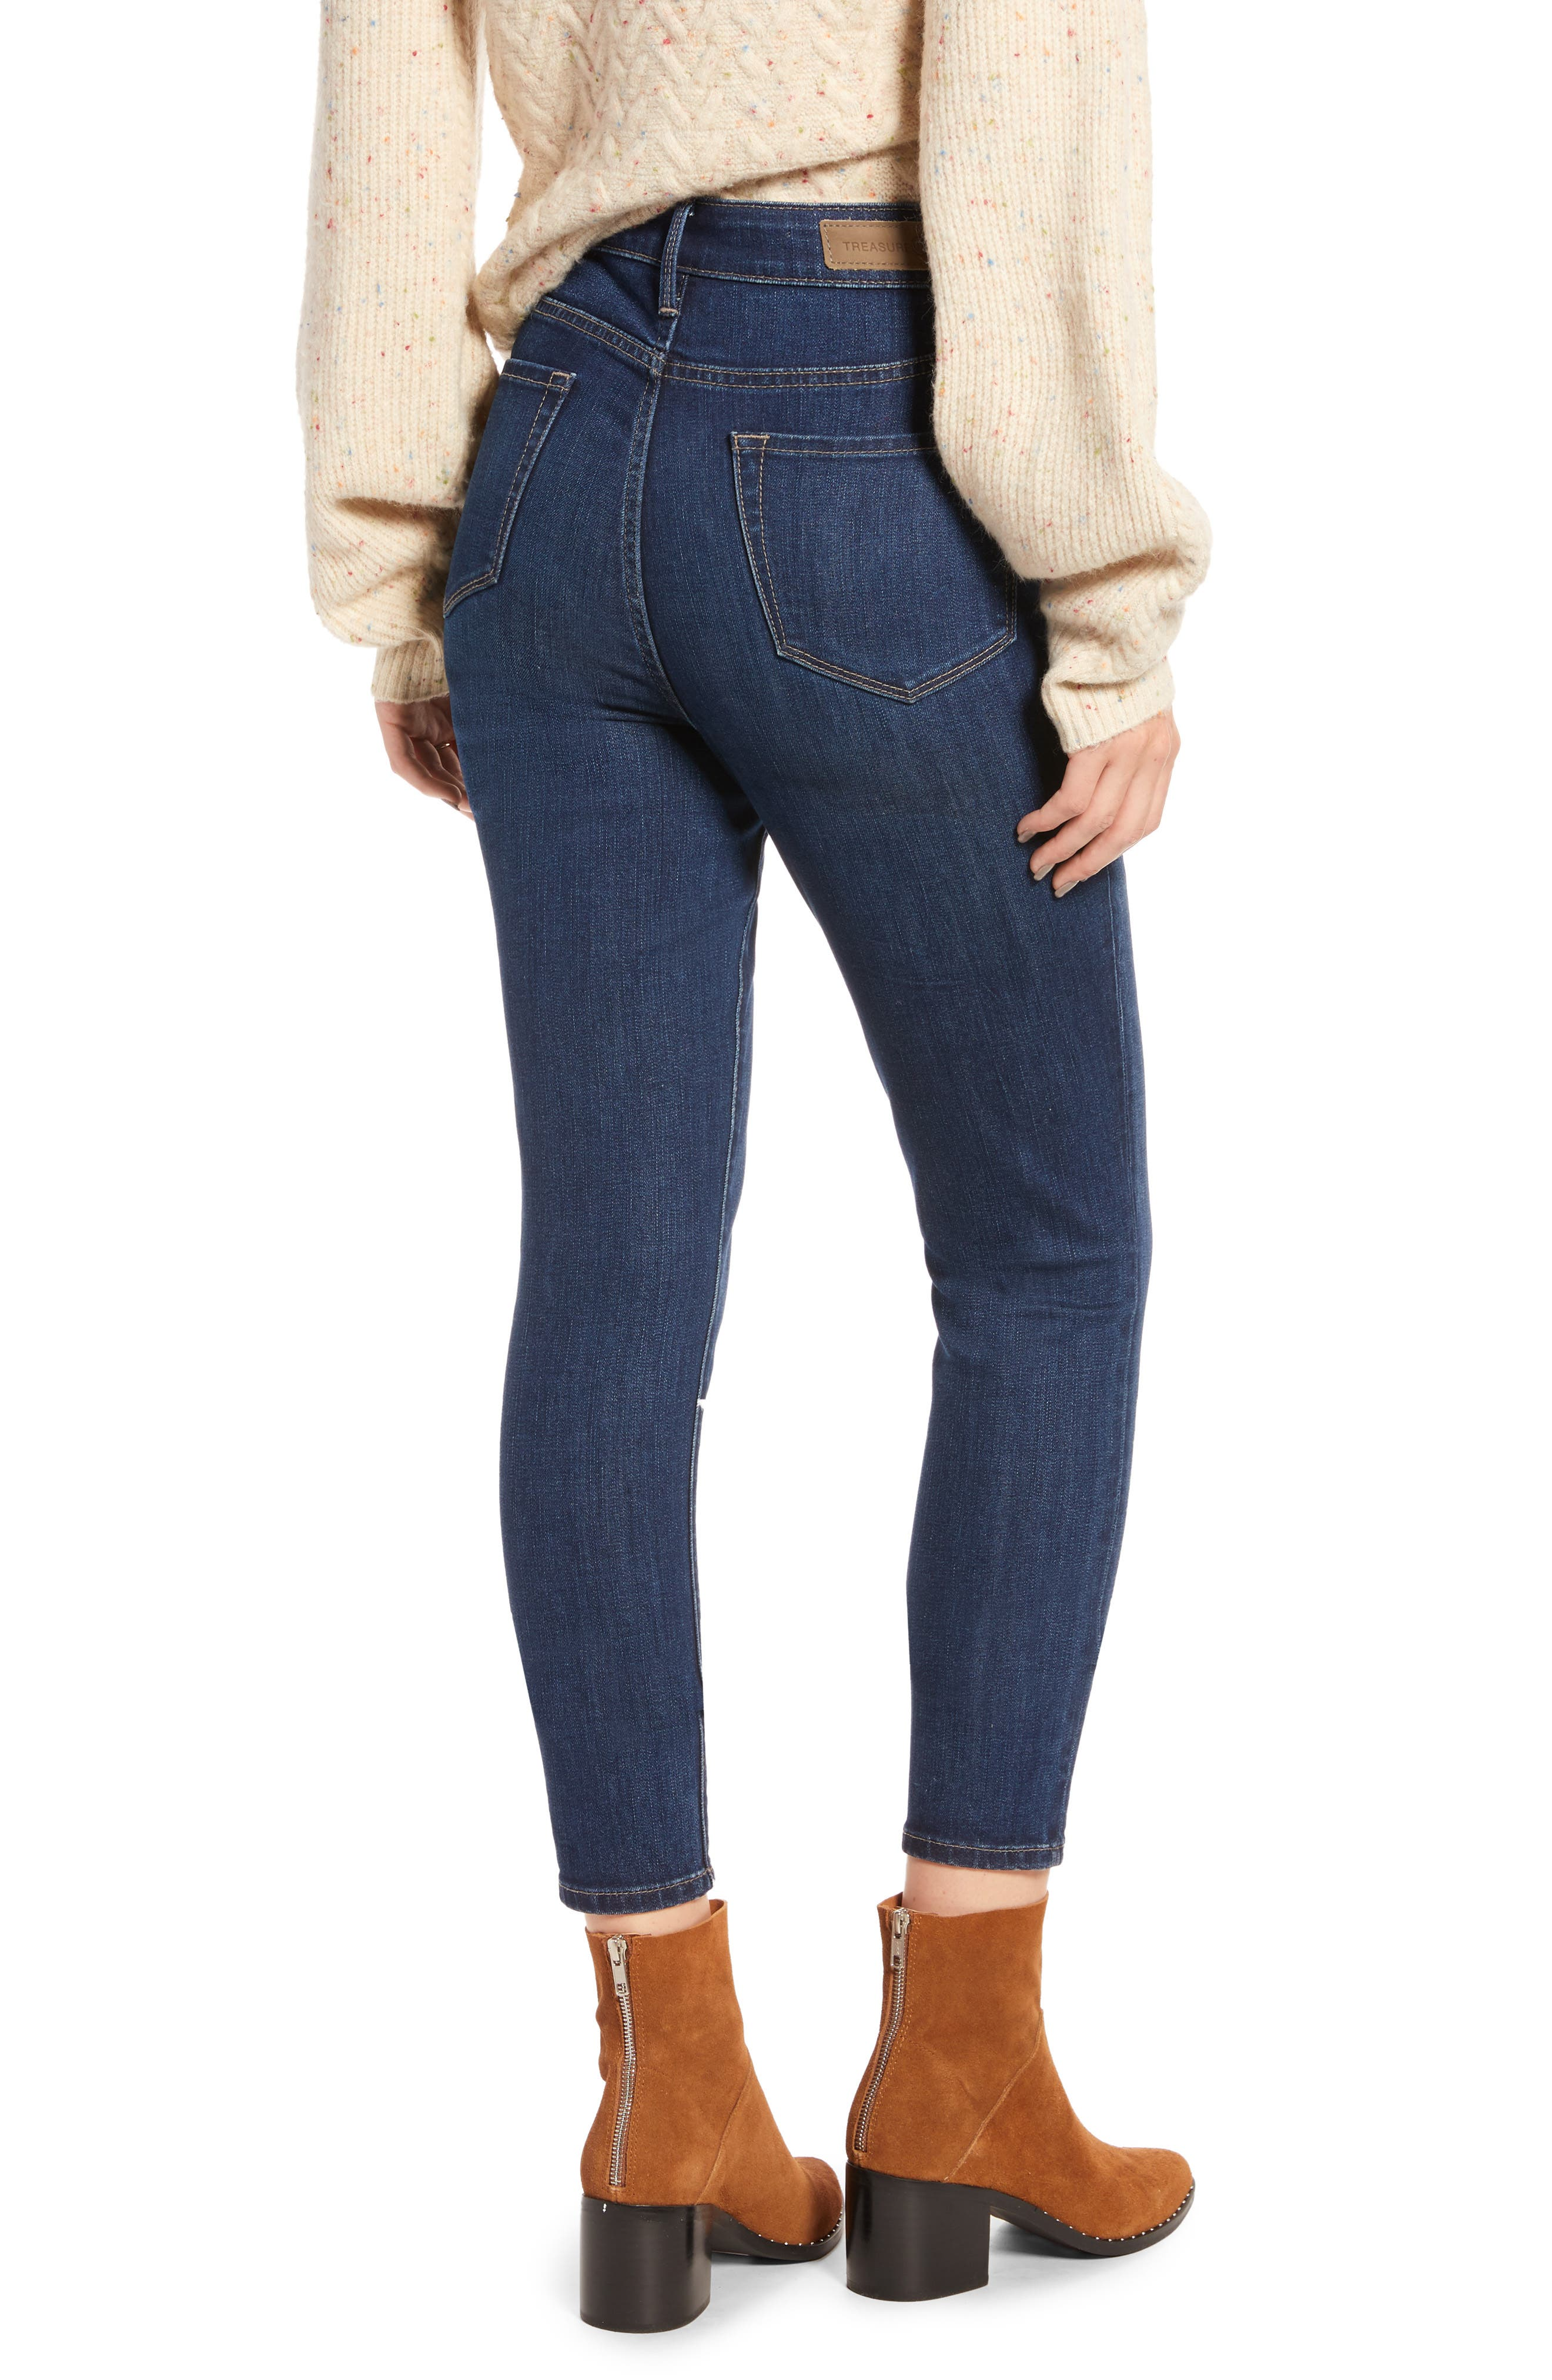 Charity High Waist Ankle Skinny Jeans,                             Alternate thumbnail 2, color,                             401